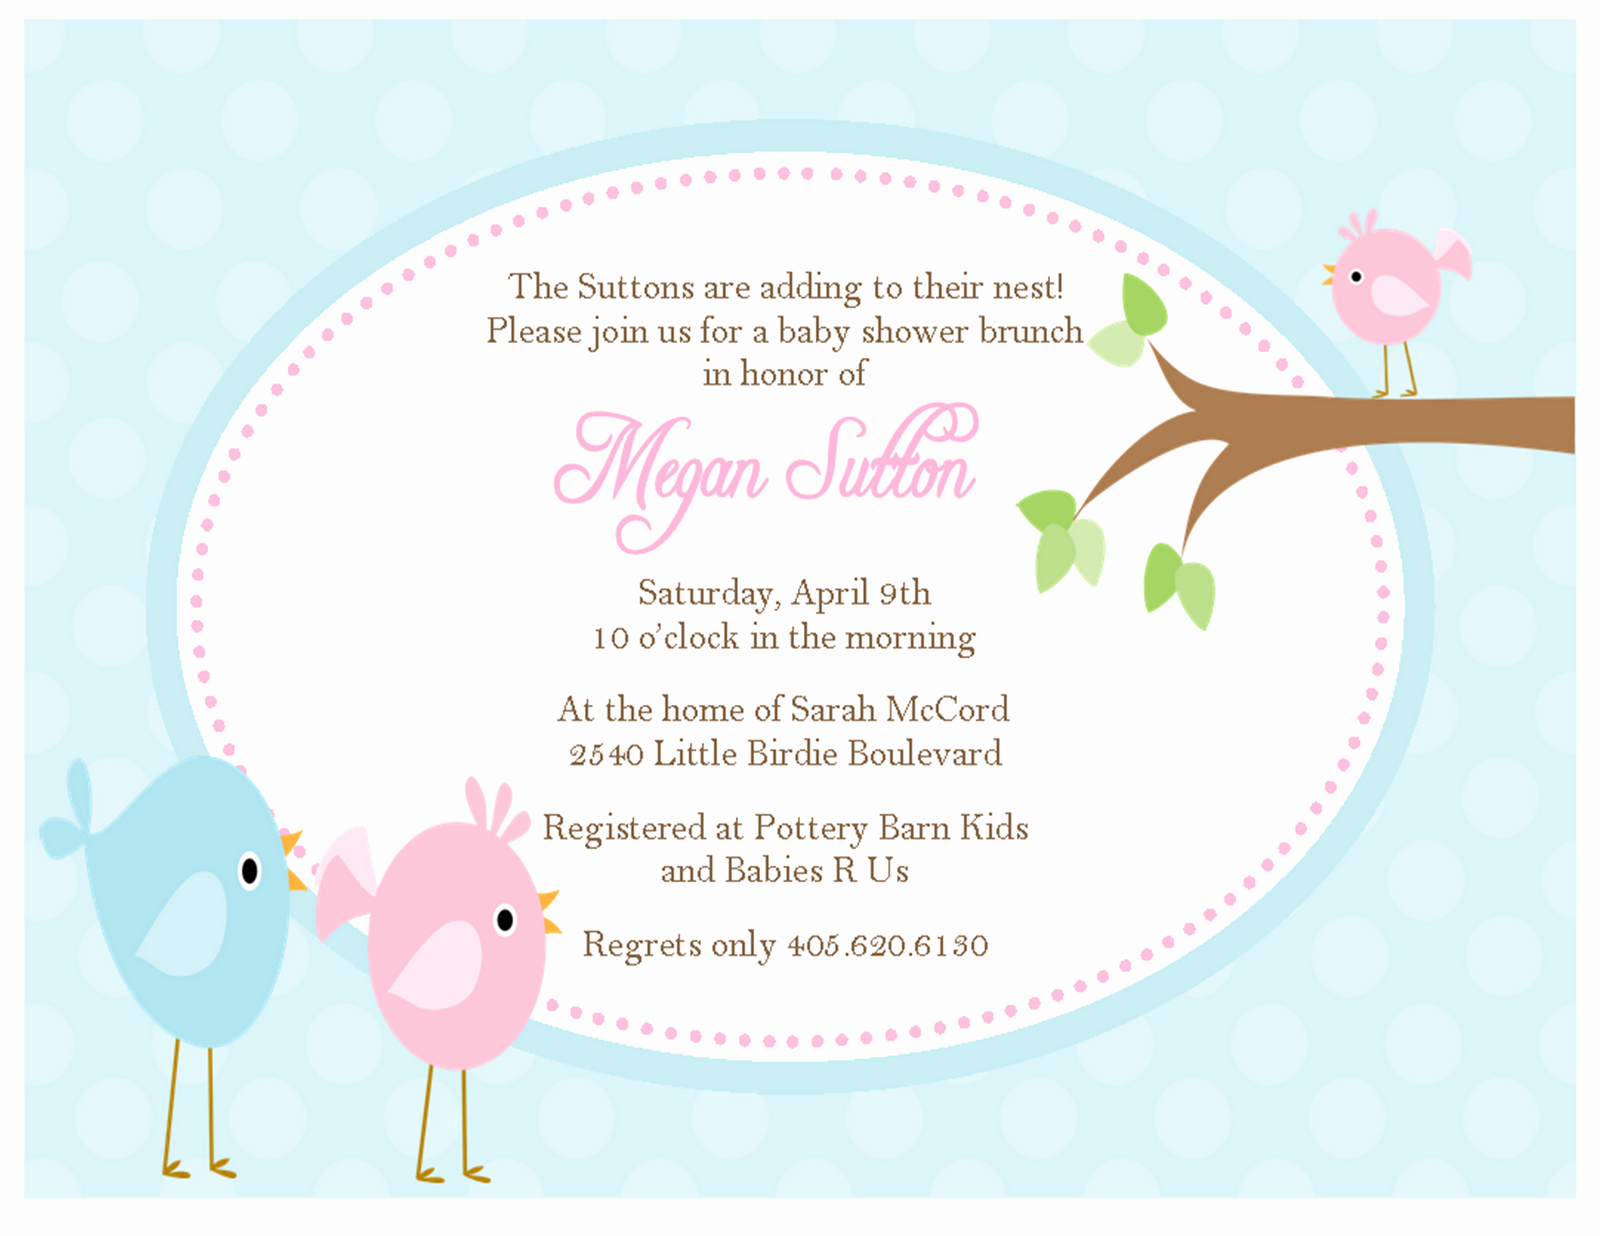 Baby Shower Invitation Pictures Beautiful the Sweet Peach Paperie Little Bir Baby Shower Invitations